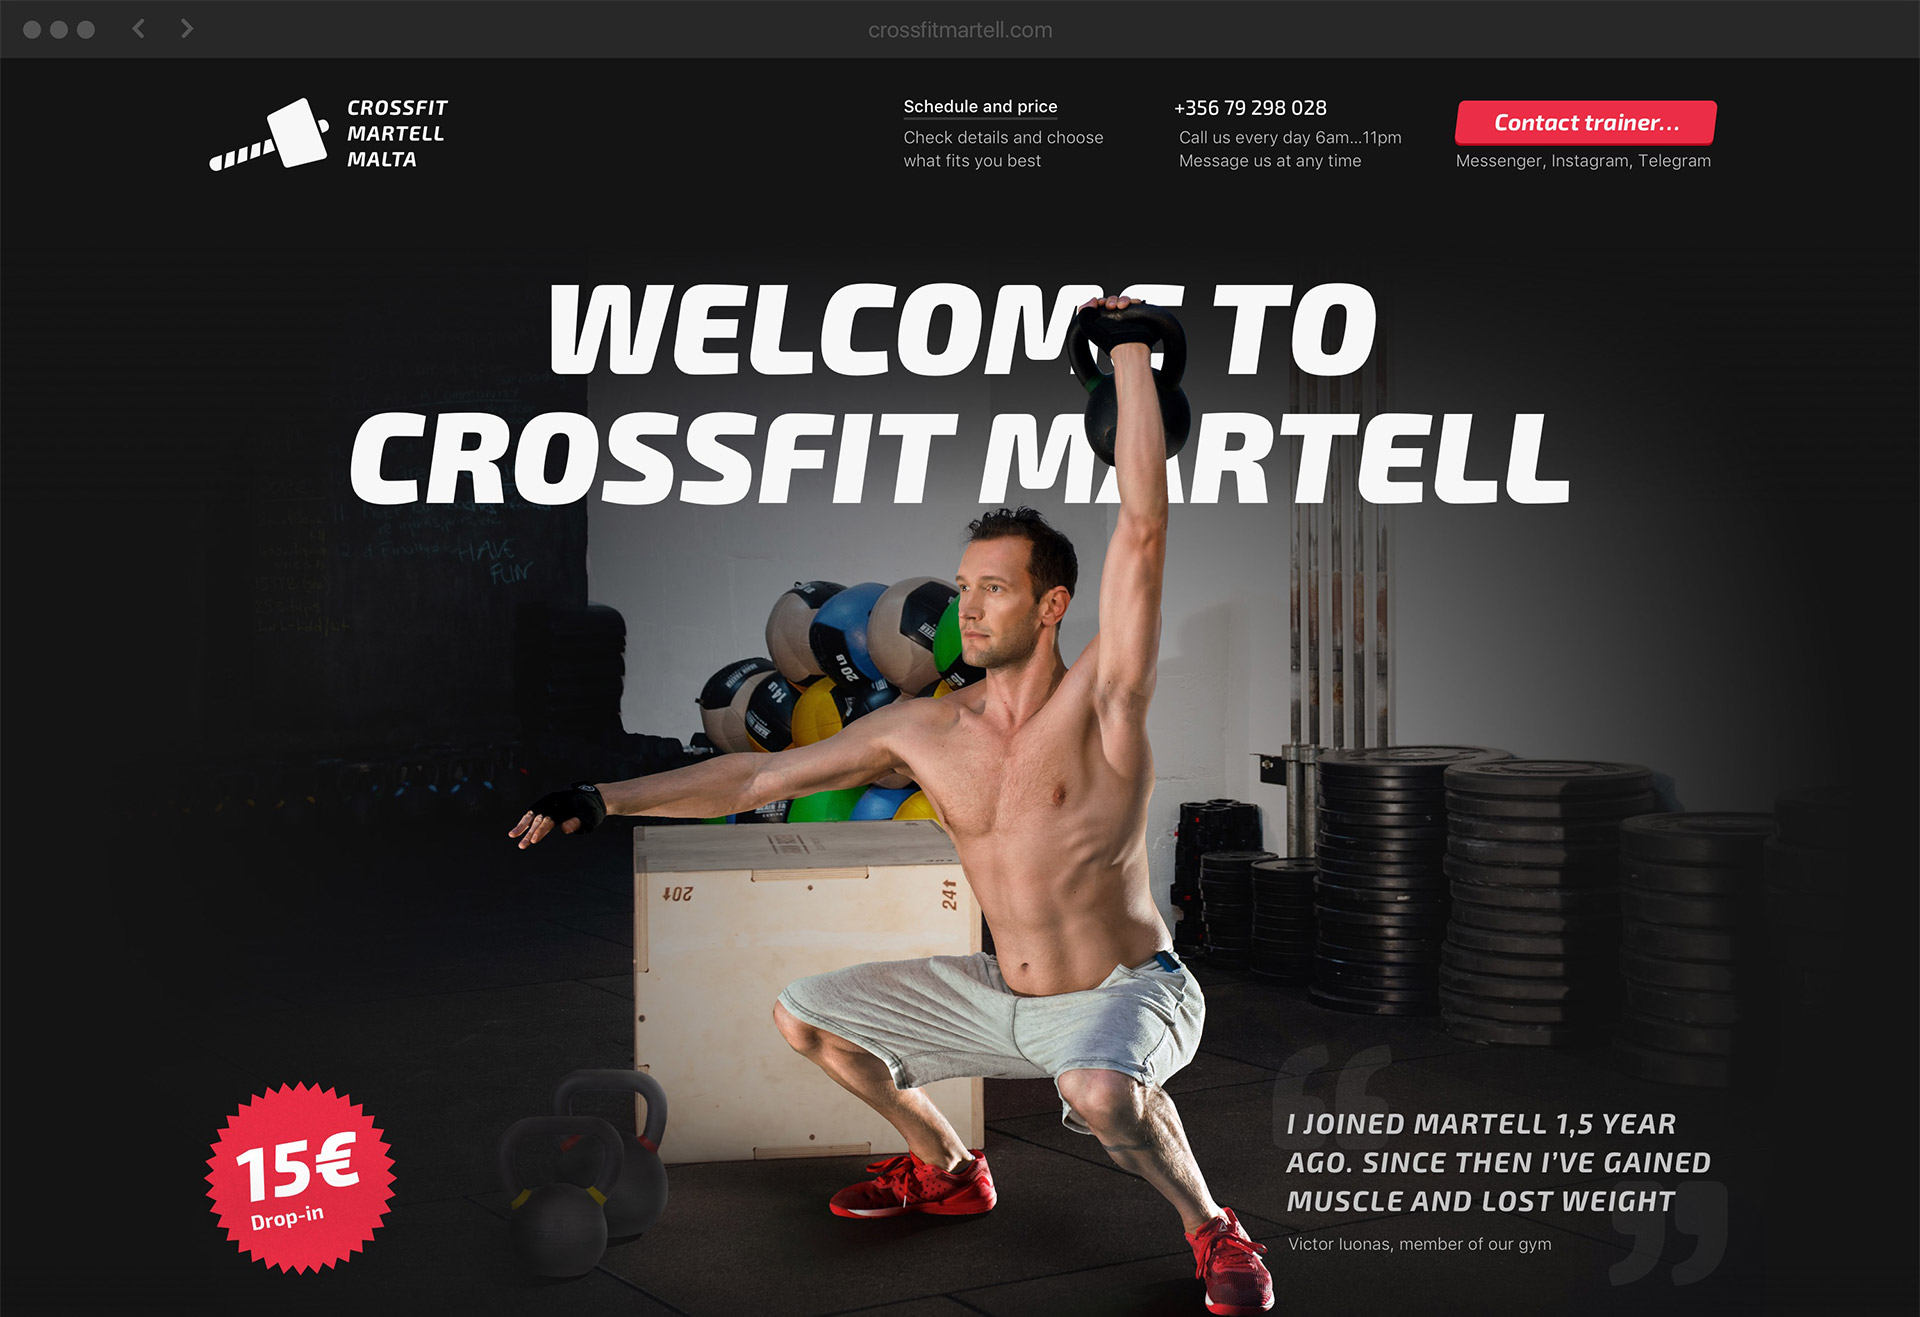 Website Crossfit Martell